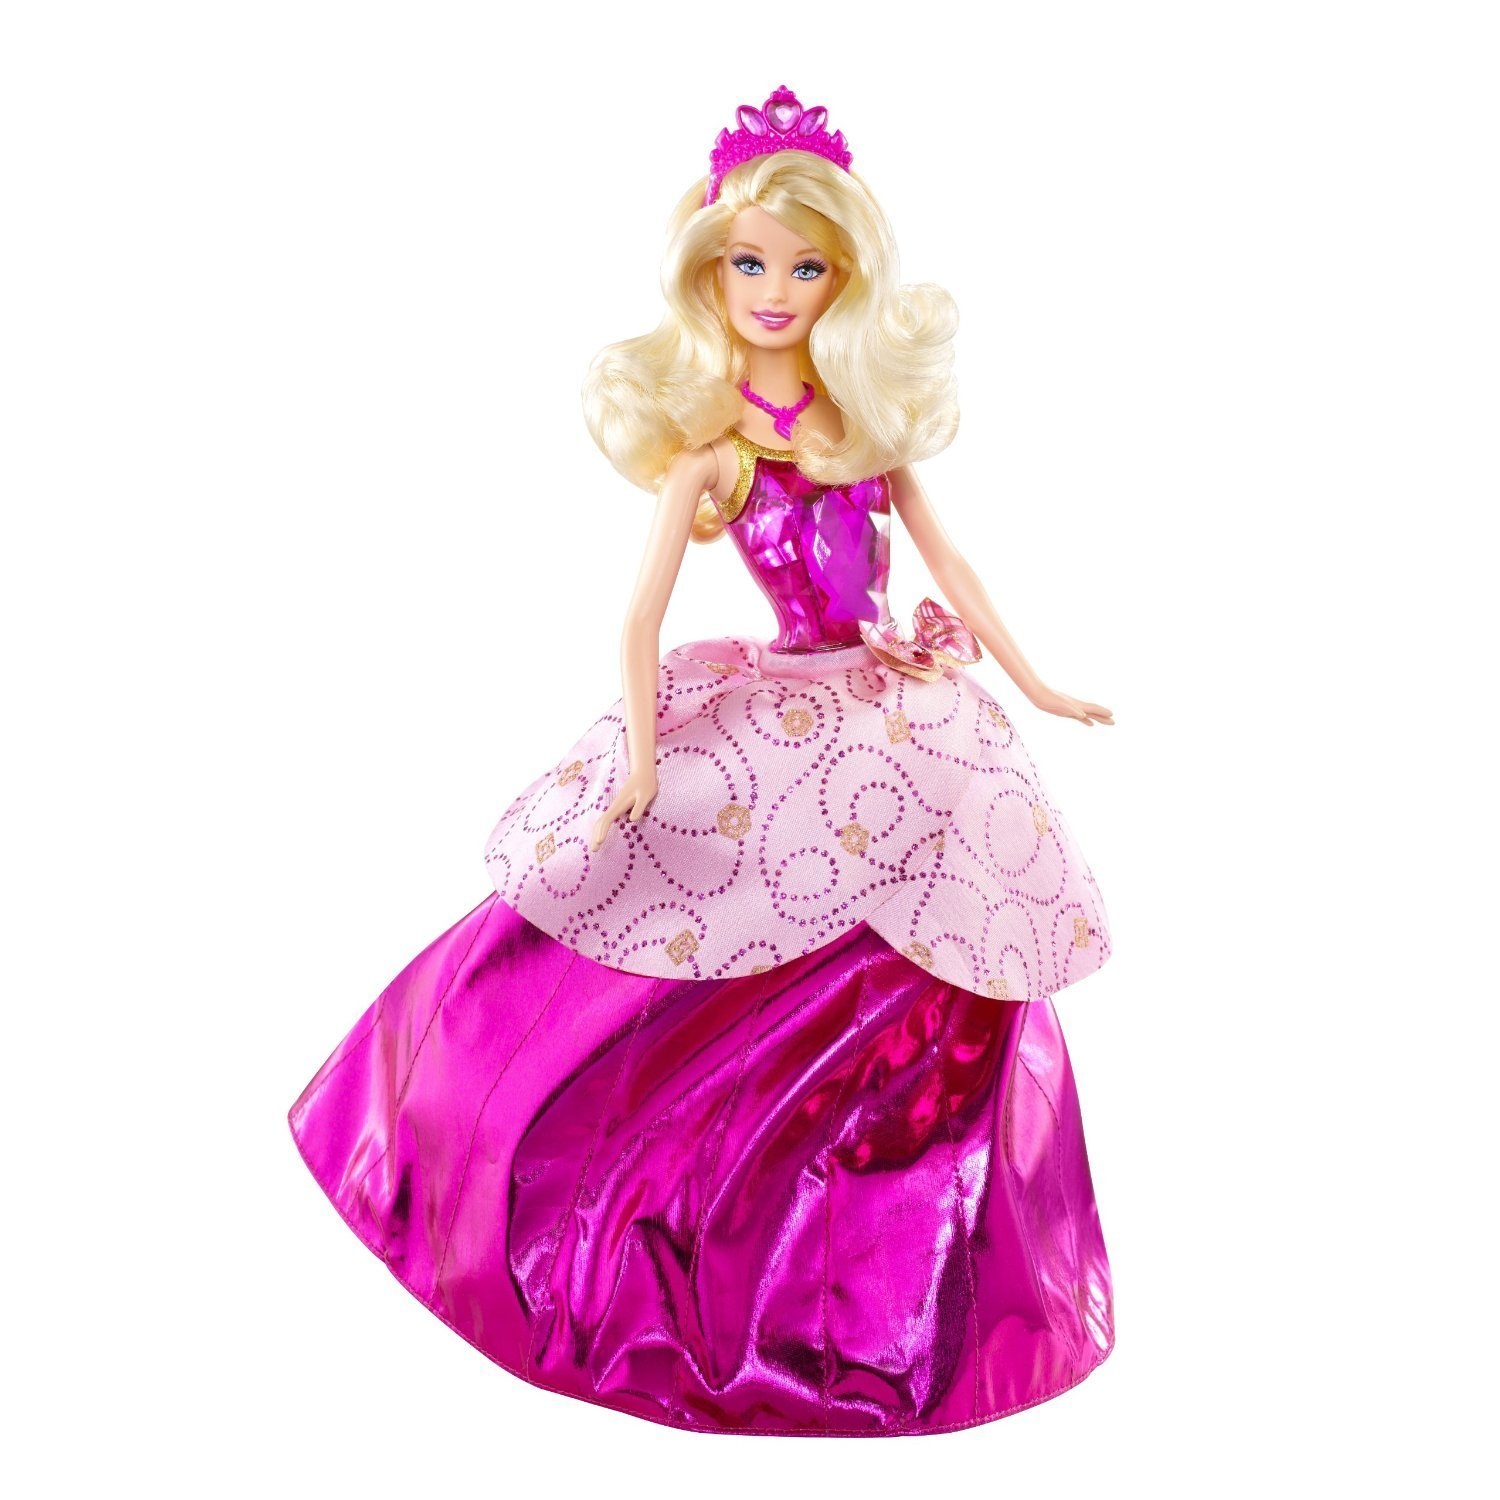 Barbie pcs blair 3 in 1 transforming doll large for good barbie movies